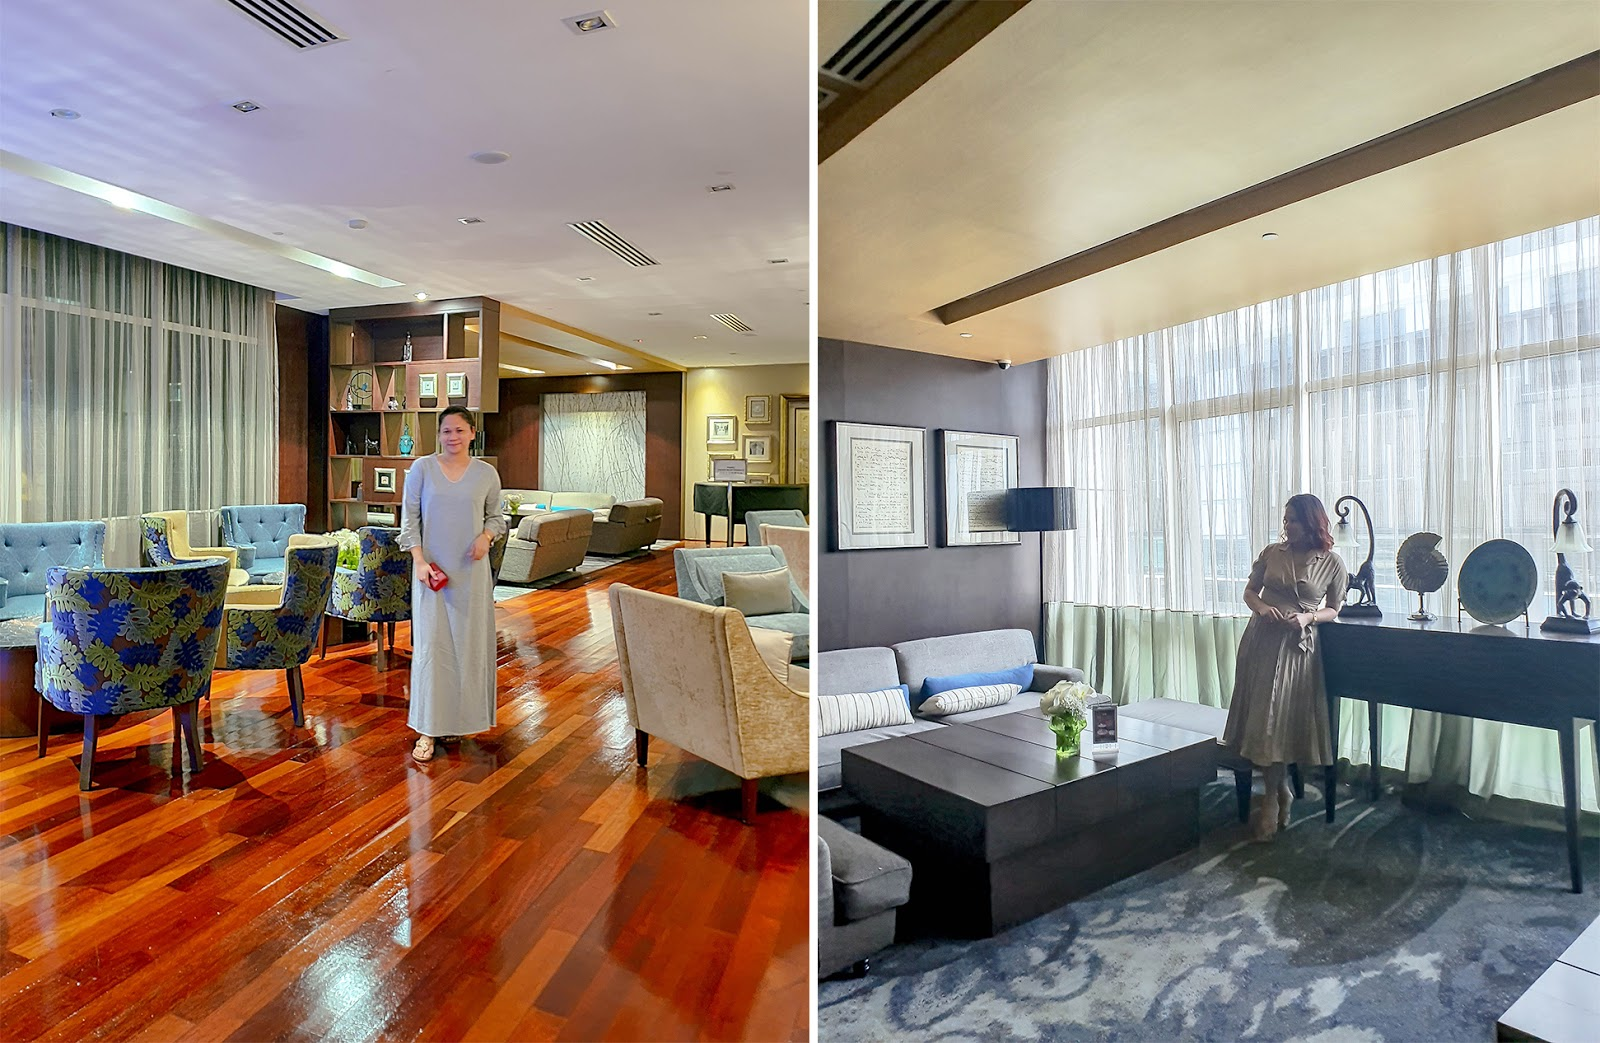 Grandis Hotel – Your luxurious home in Kota Kinabalu, Malaysia,abroad, Asia, Hotel, Kota Kinabalu, Malaysia, Portfolio, Travel, where to stay in Kota Kinabalu, luxury hotel in KK, luxury hotel, Hotel Grandis, Grandis Hotel,